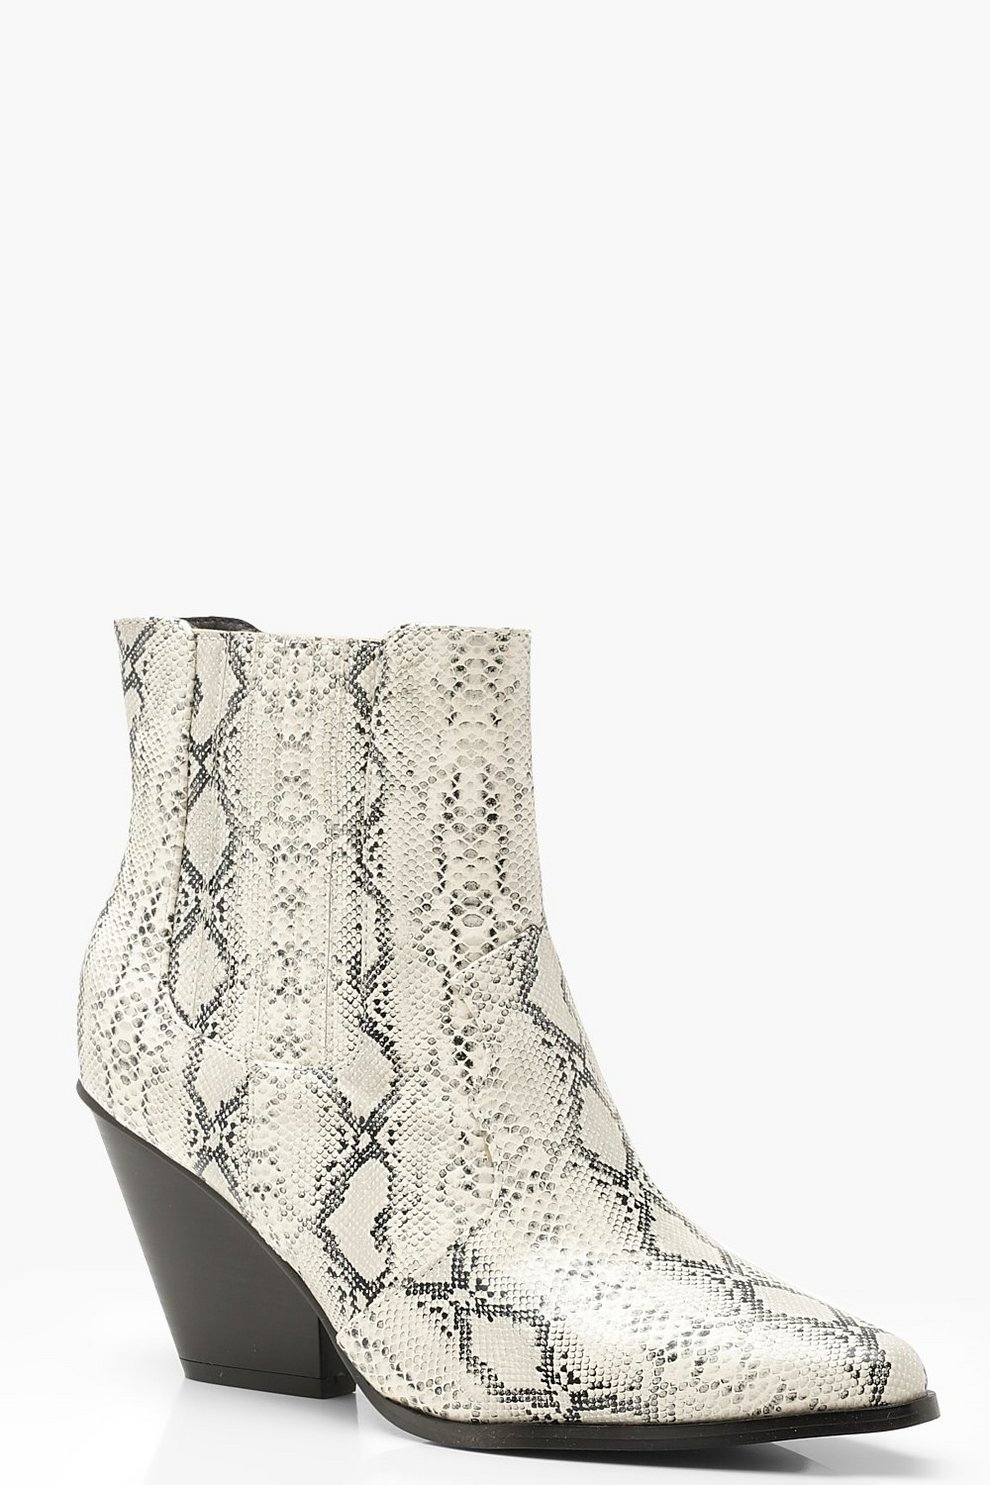 2d0ff12bc76f Womens Grey Western Style Snake Print Ankle Boots. Hover to zoom